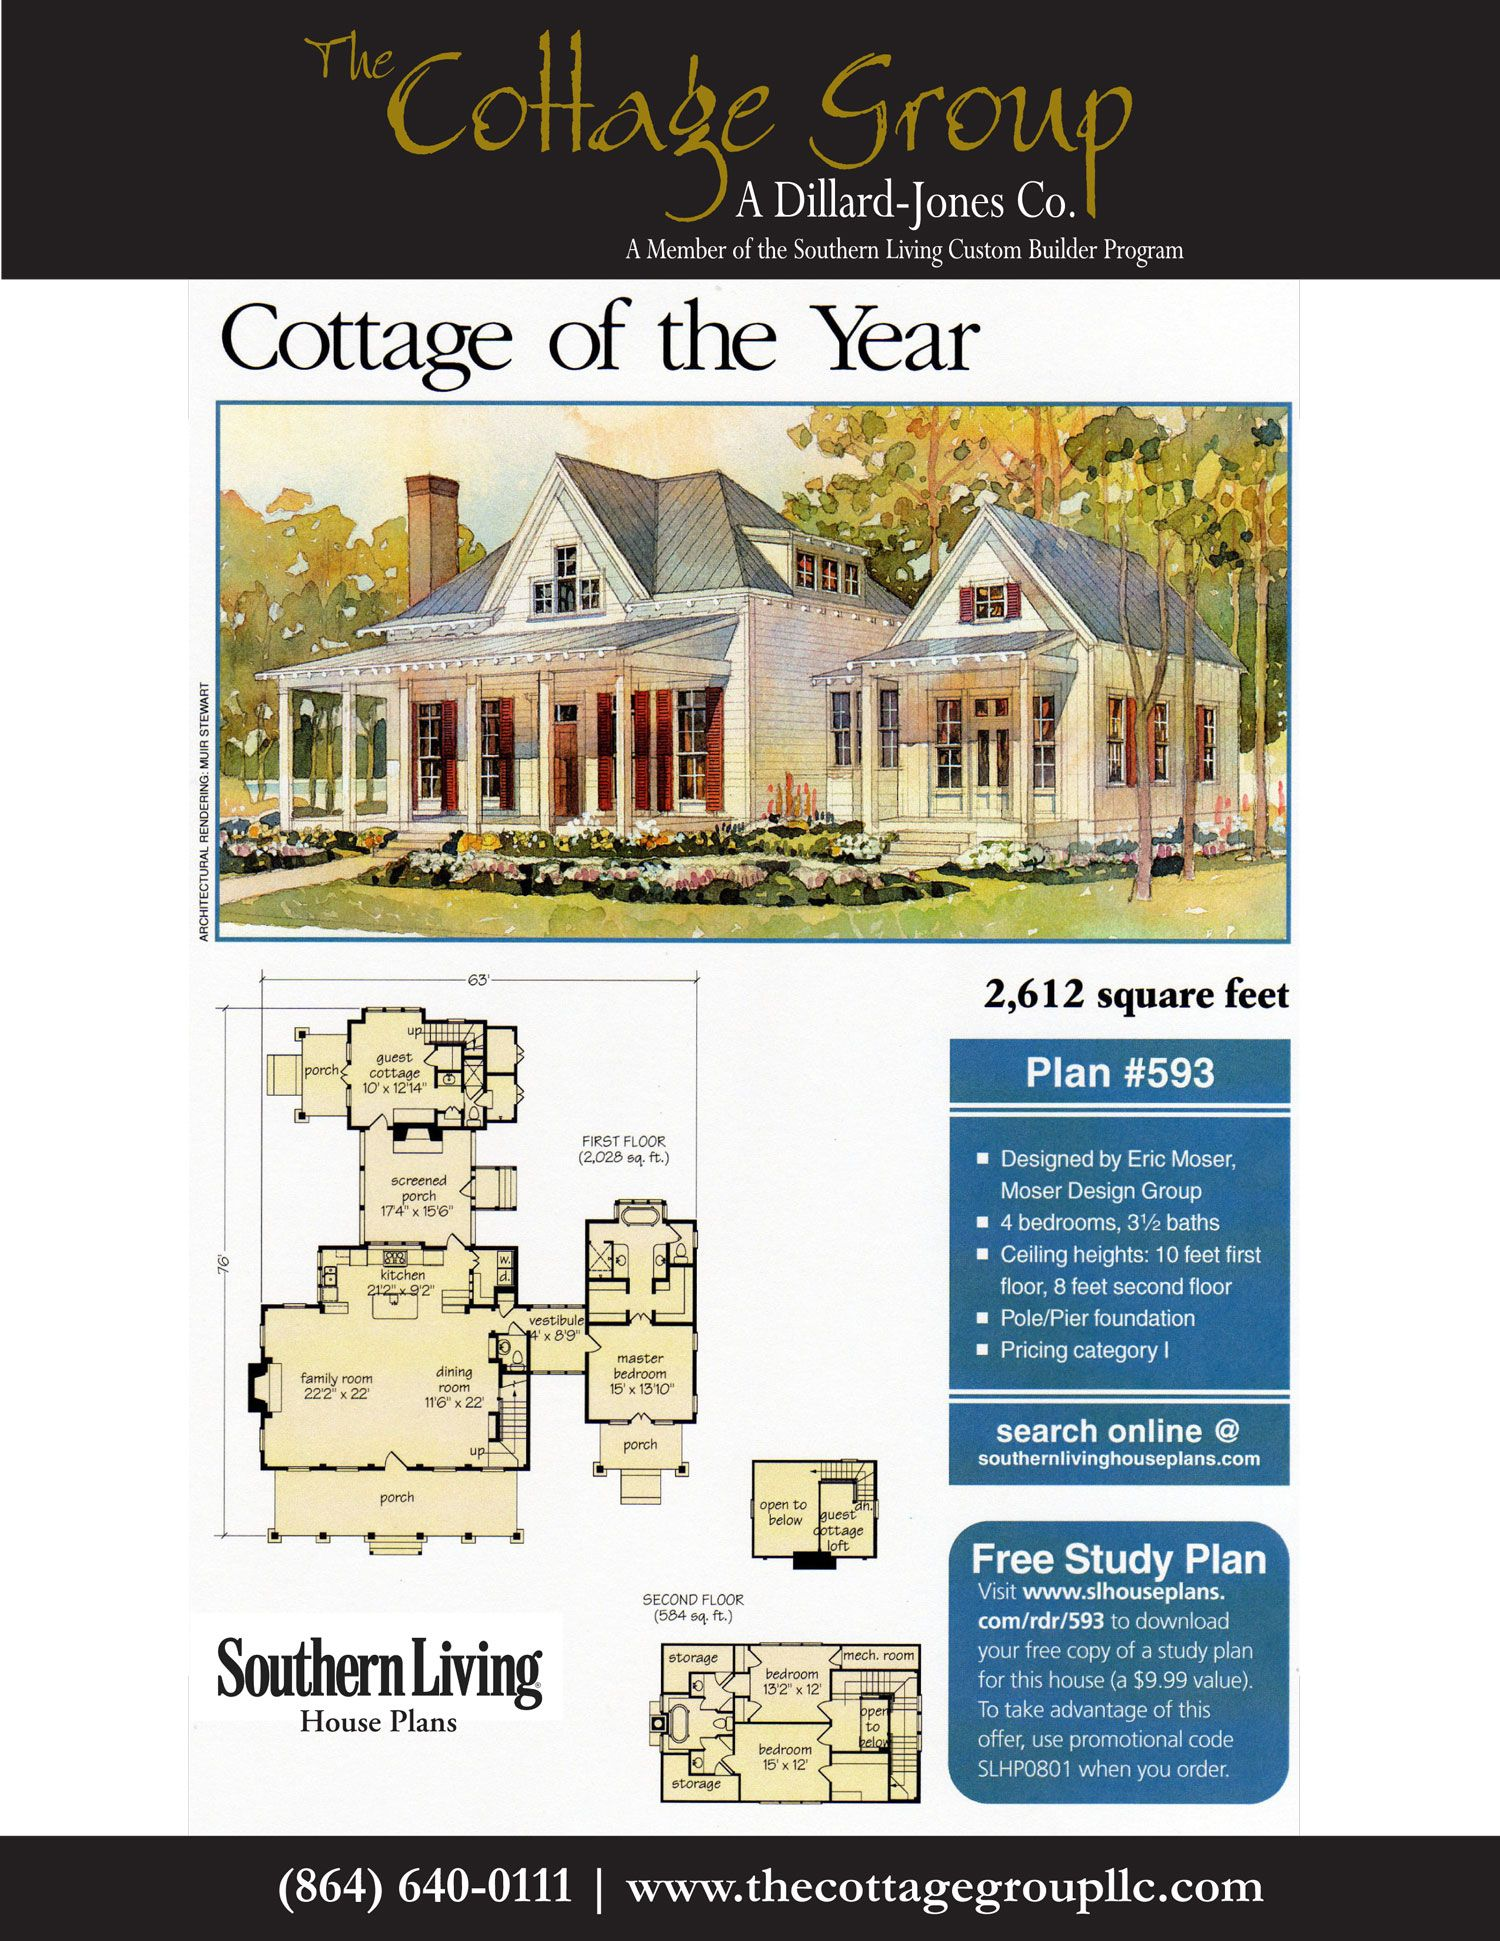 Cottage of the Year : The Cottage Group | HOME DECOR | Pinterest ...